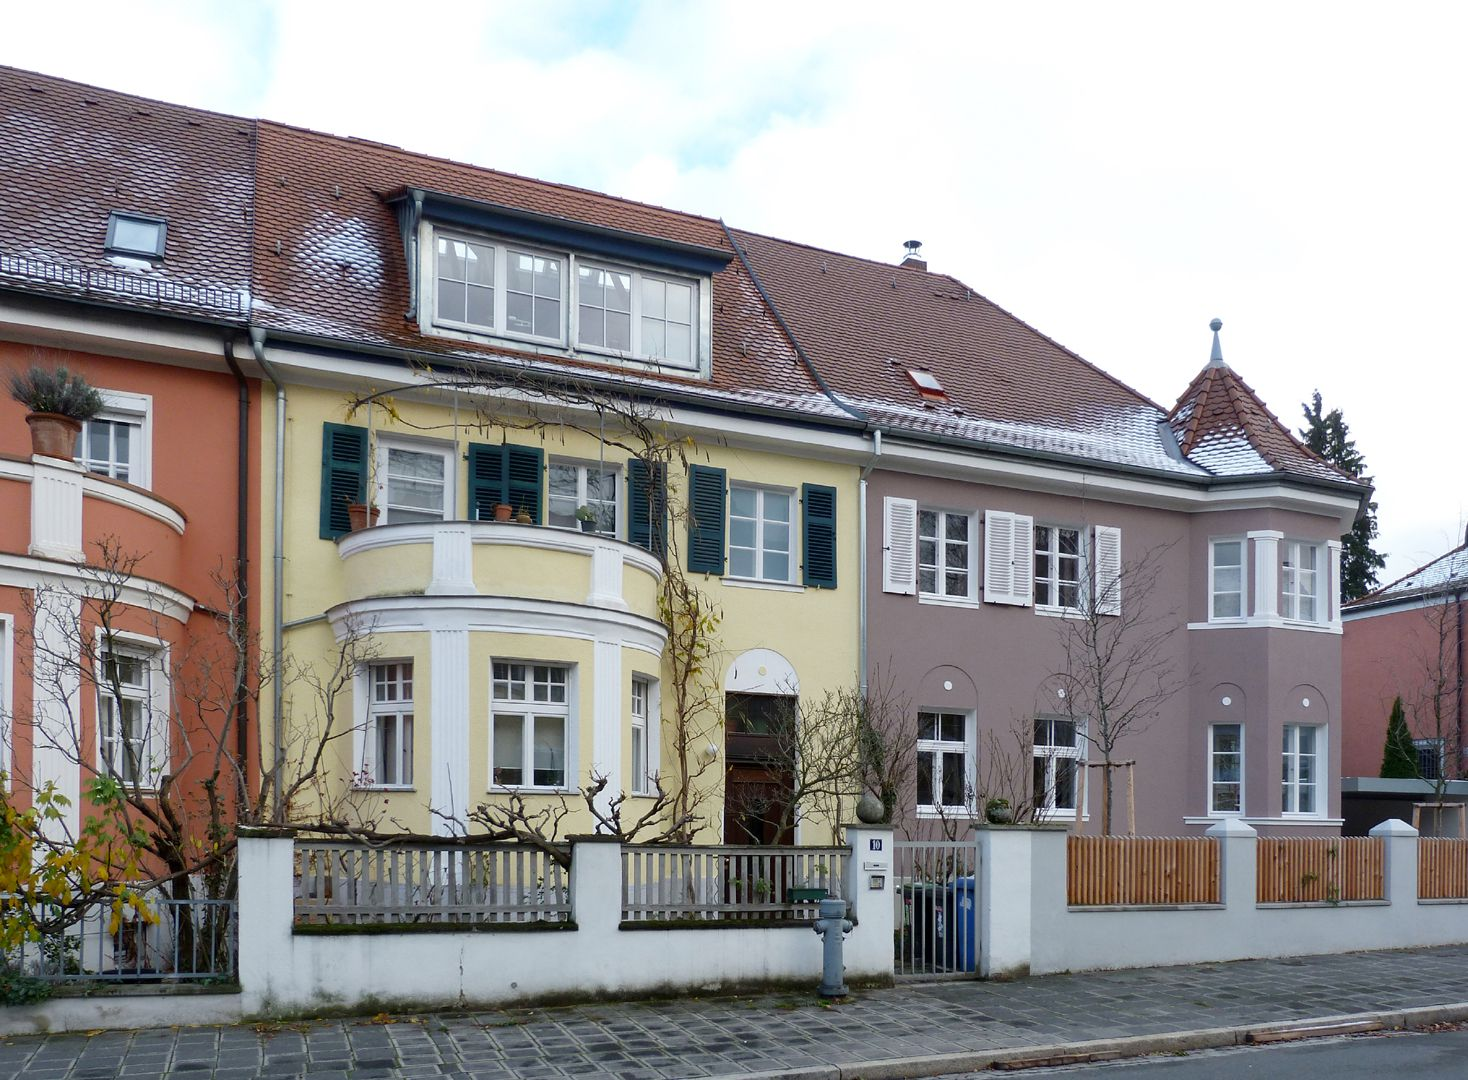 Row of houses in Danziger Straße View from the west